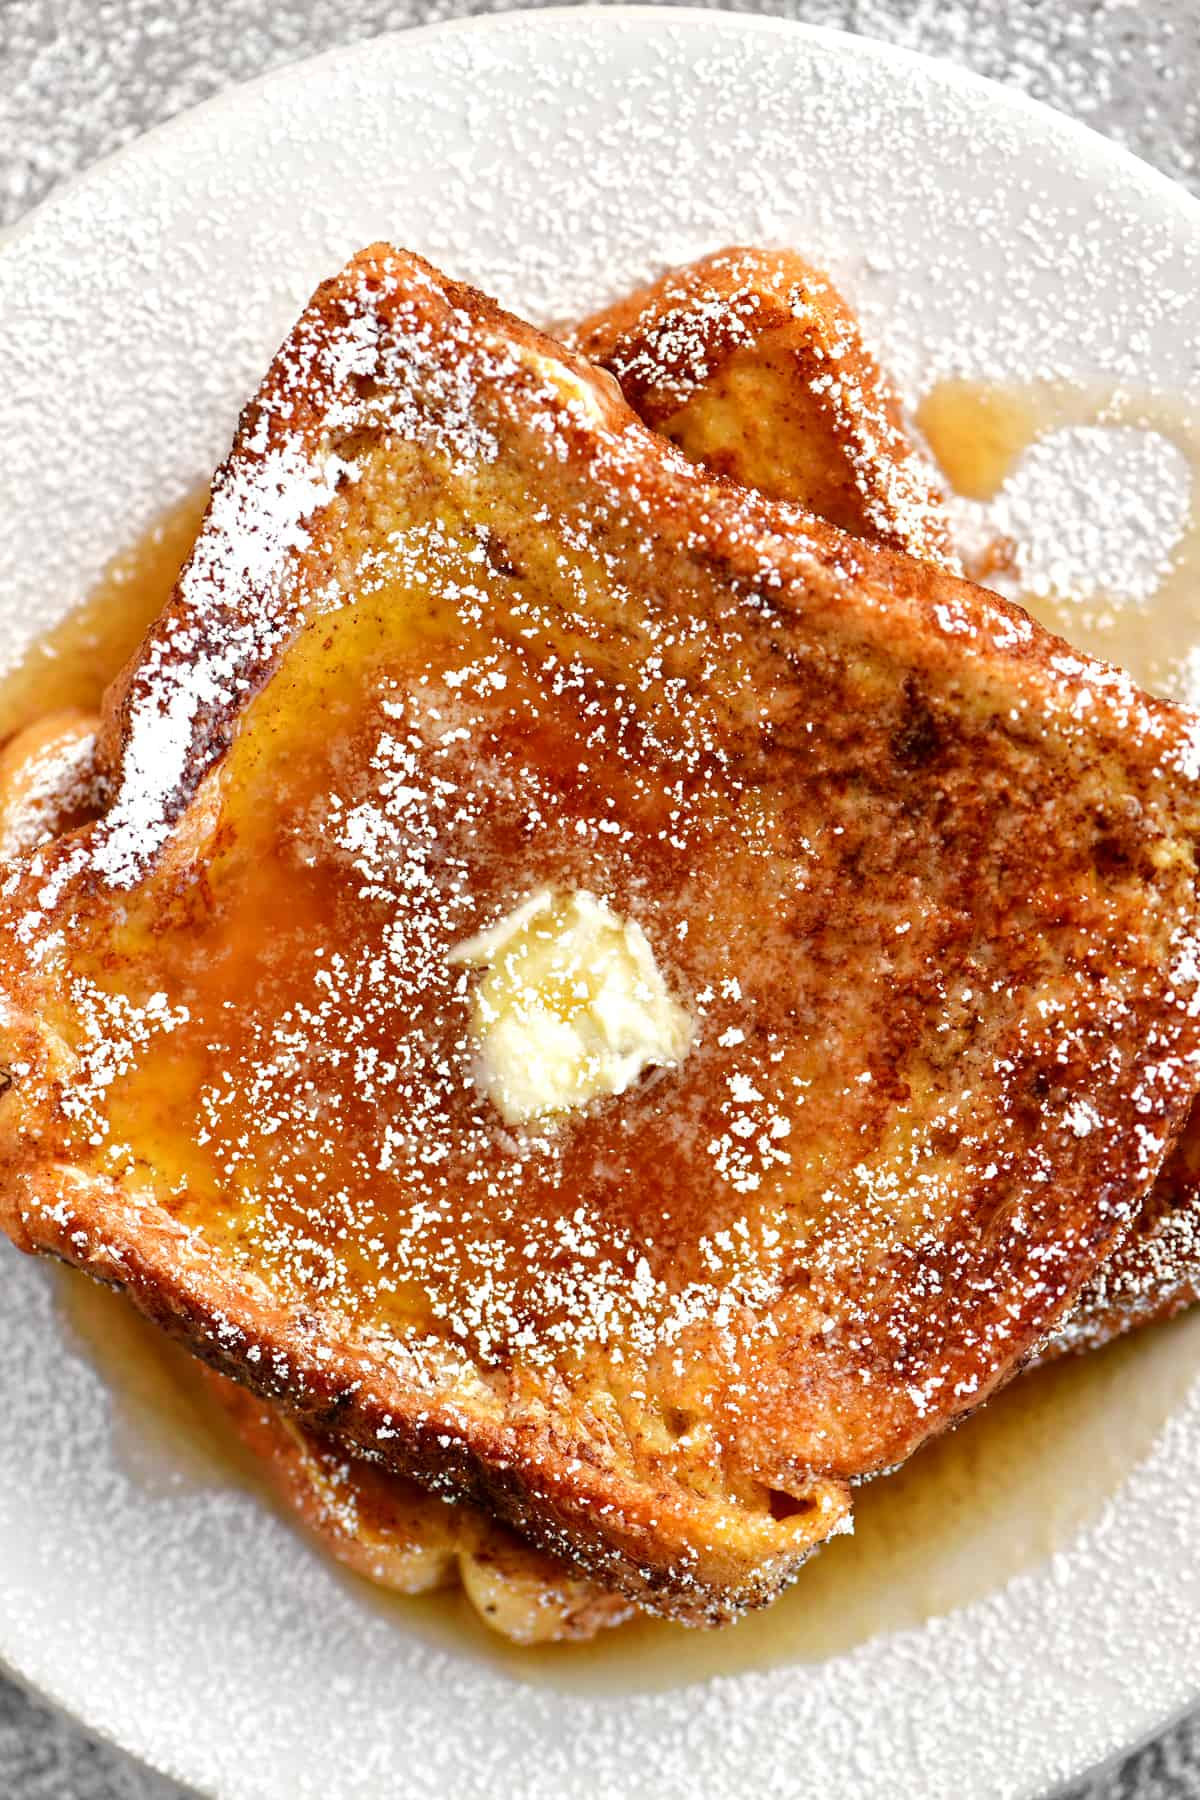 a topdown view of syrup and butter on french toast